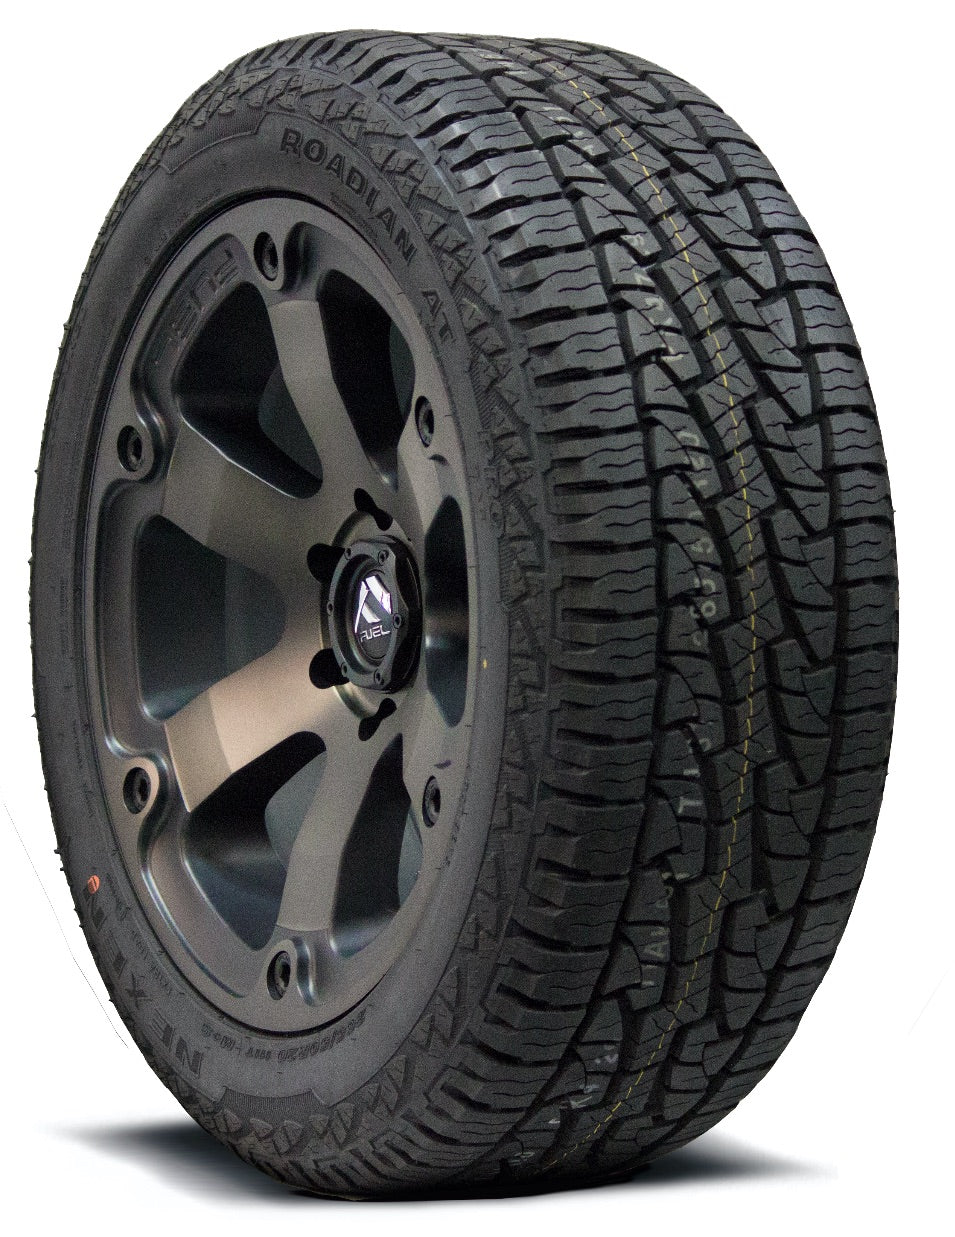 235/85 R16 NEXEN ROADIAN AT PRO RA8 | BLACK LTR 120/116S